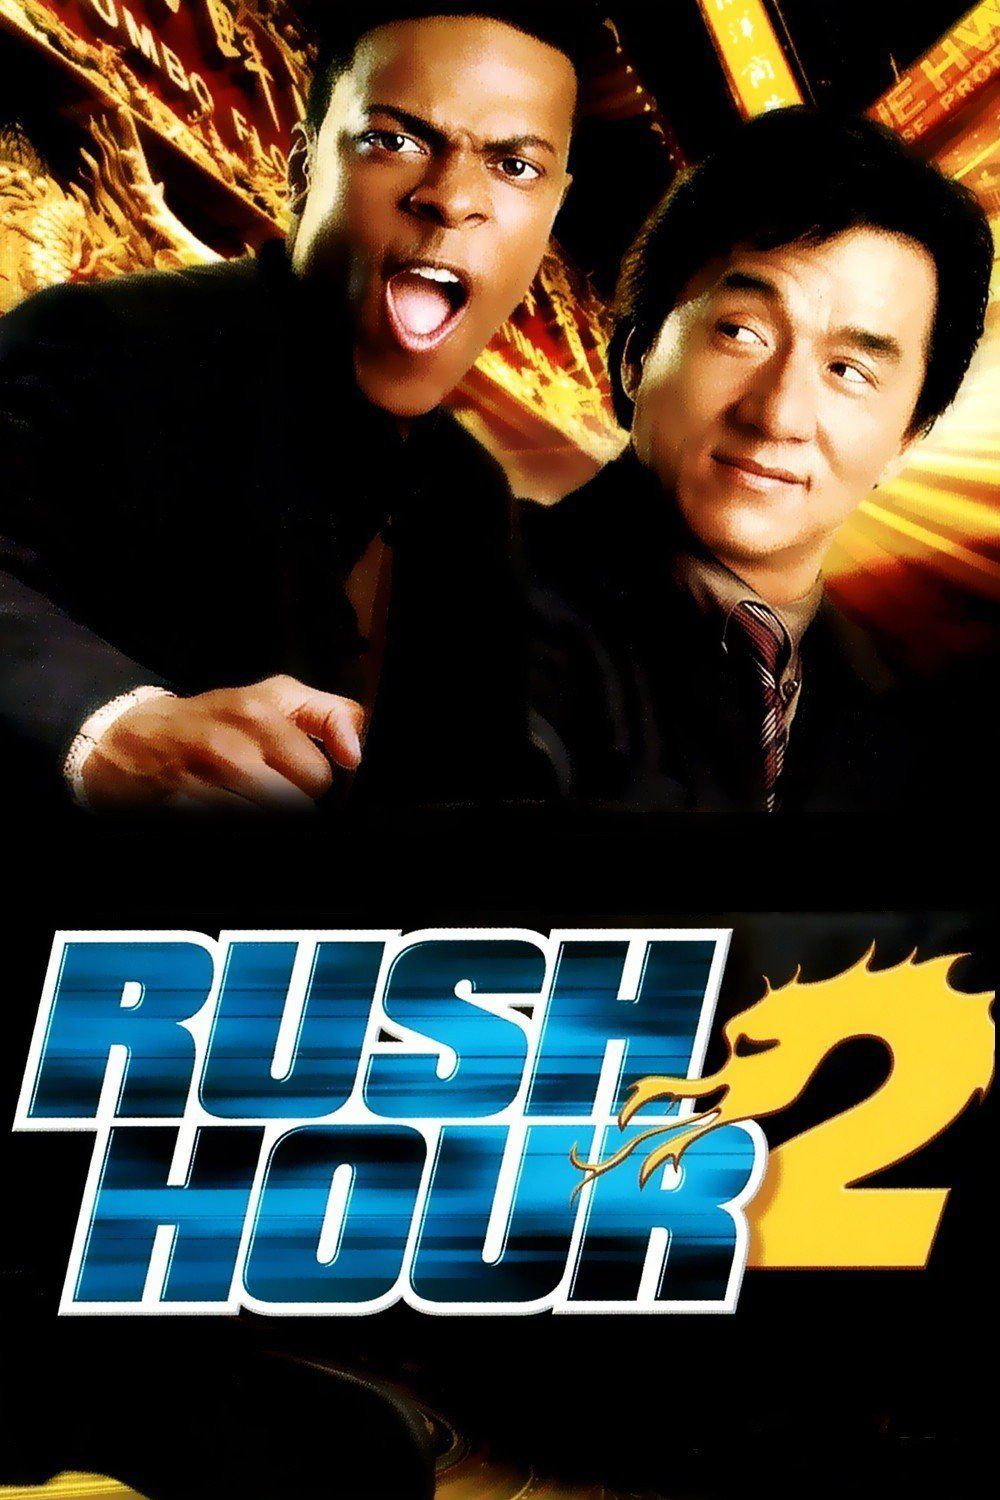 Rush Hour 2 2001 Hd Movies Online Full Movies Online Free Free Movies Online